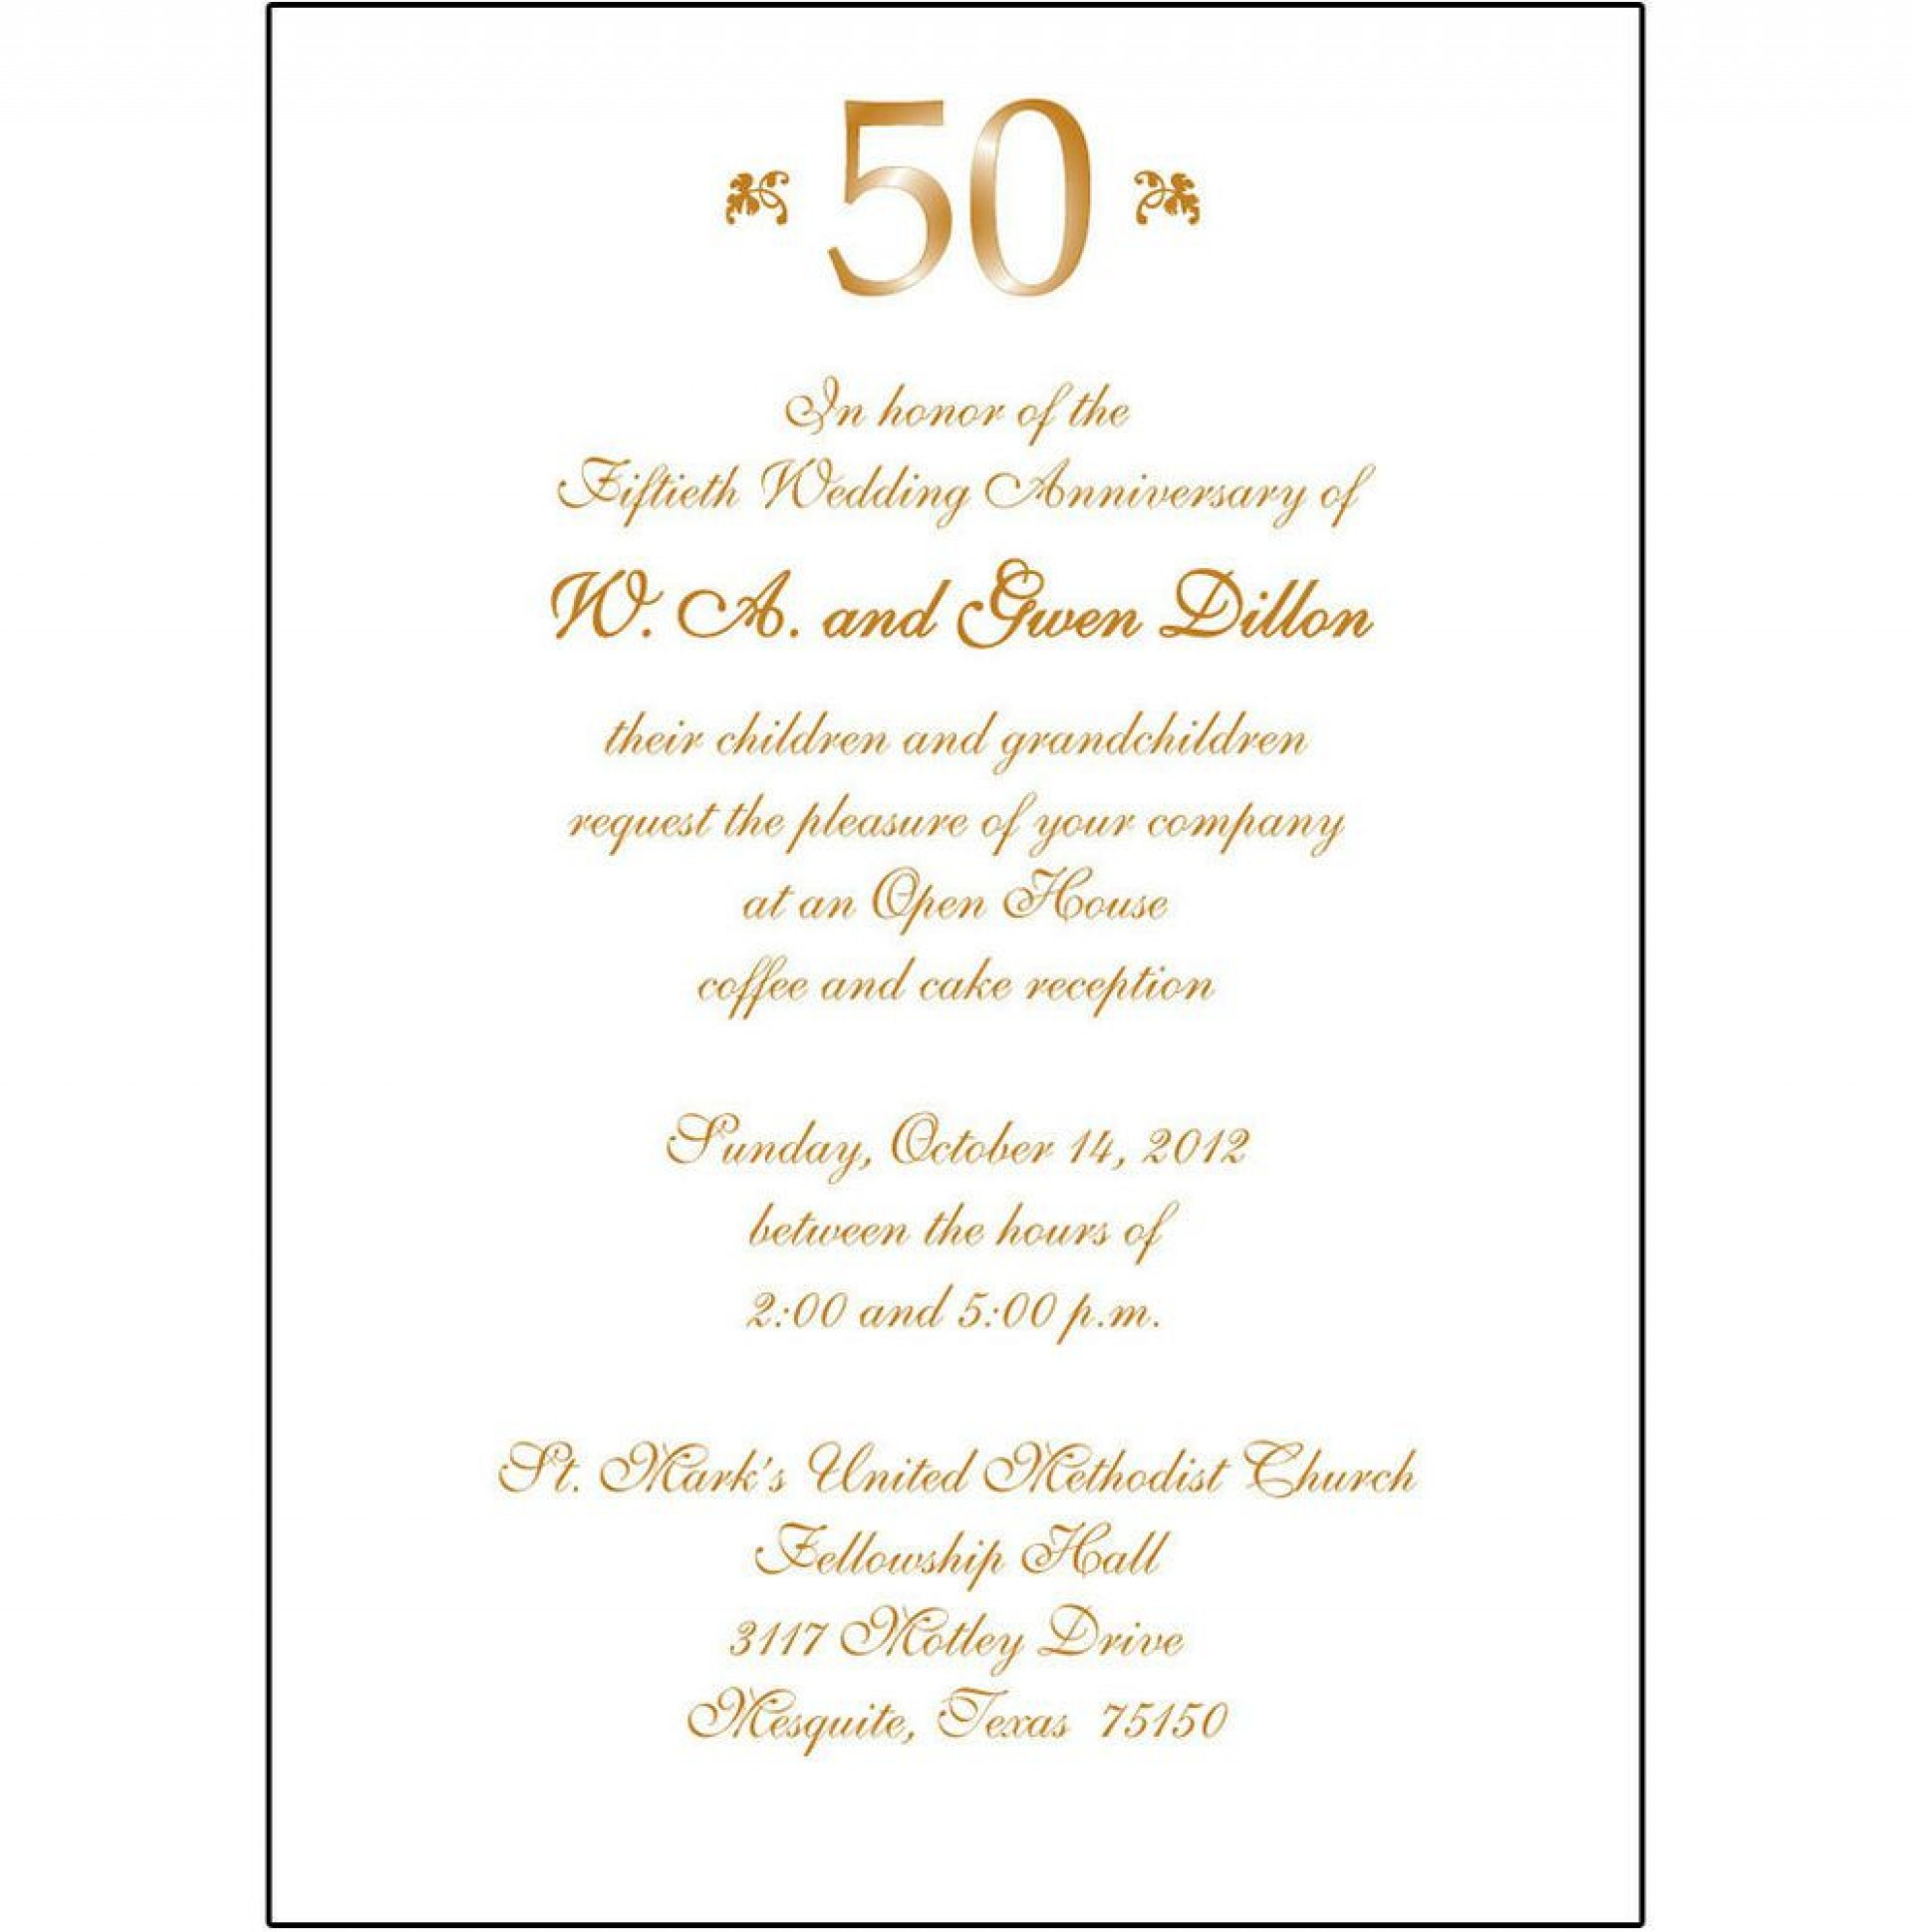 006 Outstanding 50th Wedding Anniversary Invitation Sample  Samples Free Party Template Card Idea1920